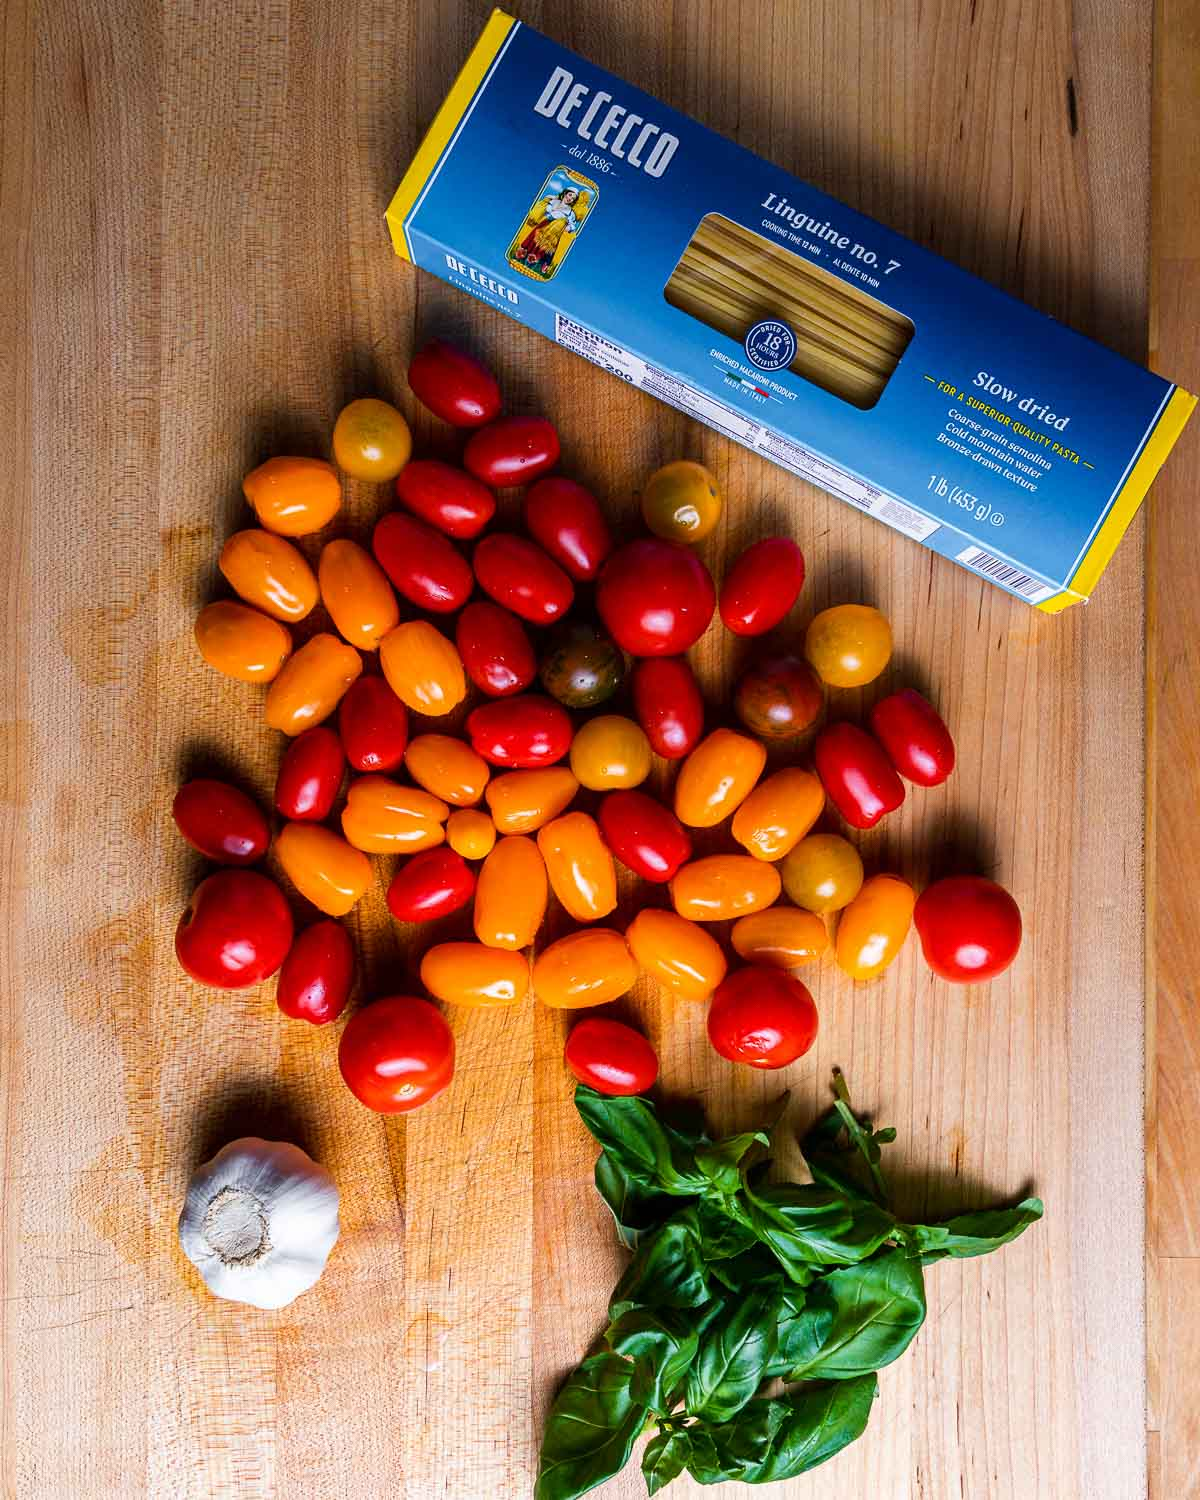 Ingredients shown: Linguine, assorted cherry tomatoes, garlic, and basil.